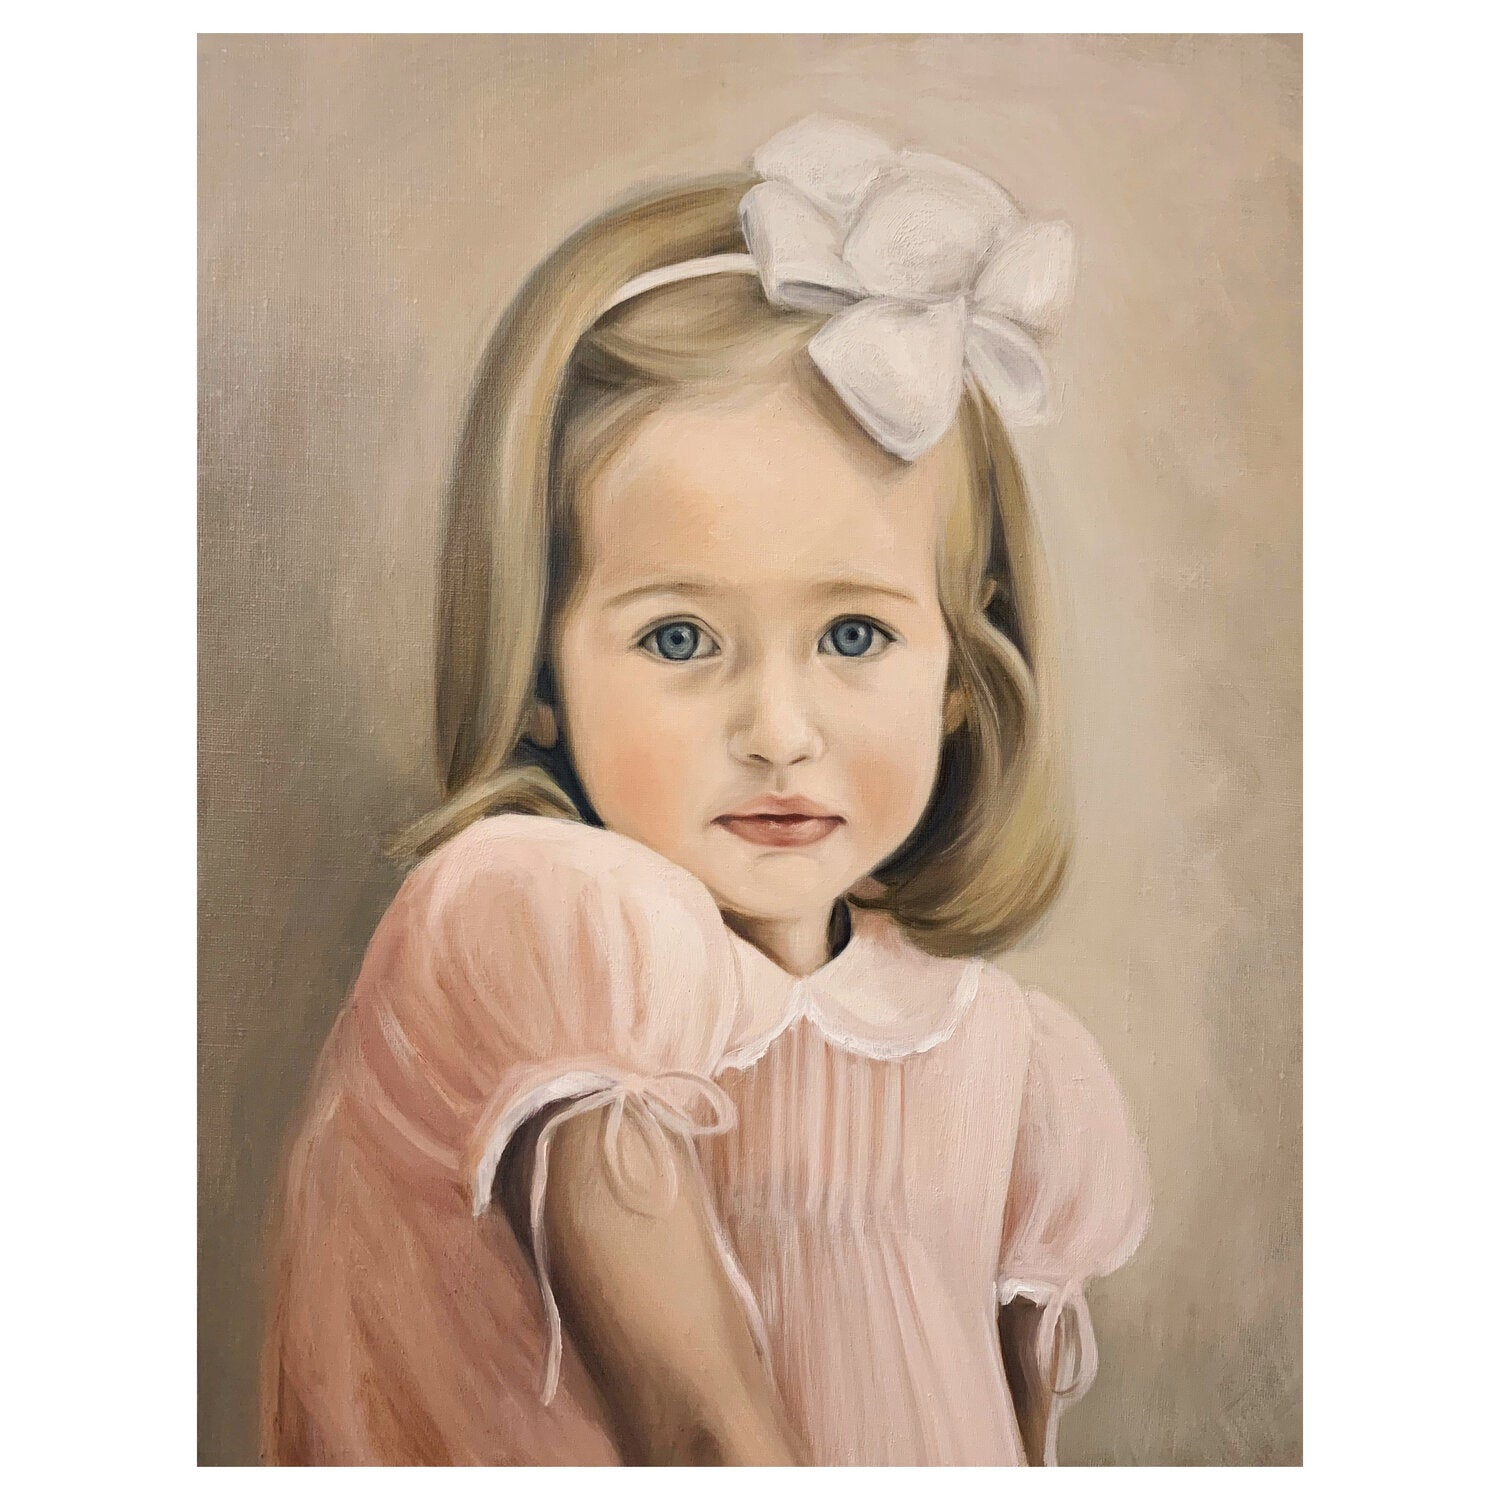 Lauren Phelps - Capturing the magic of childhood - Commissioned portrait - Charlotte sy Dimby